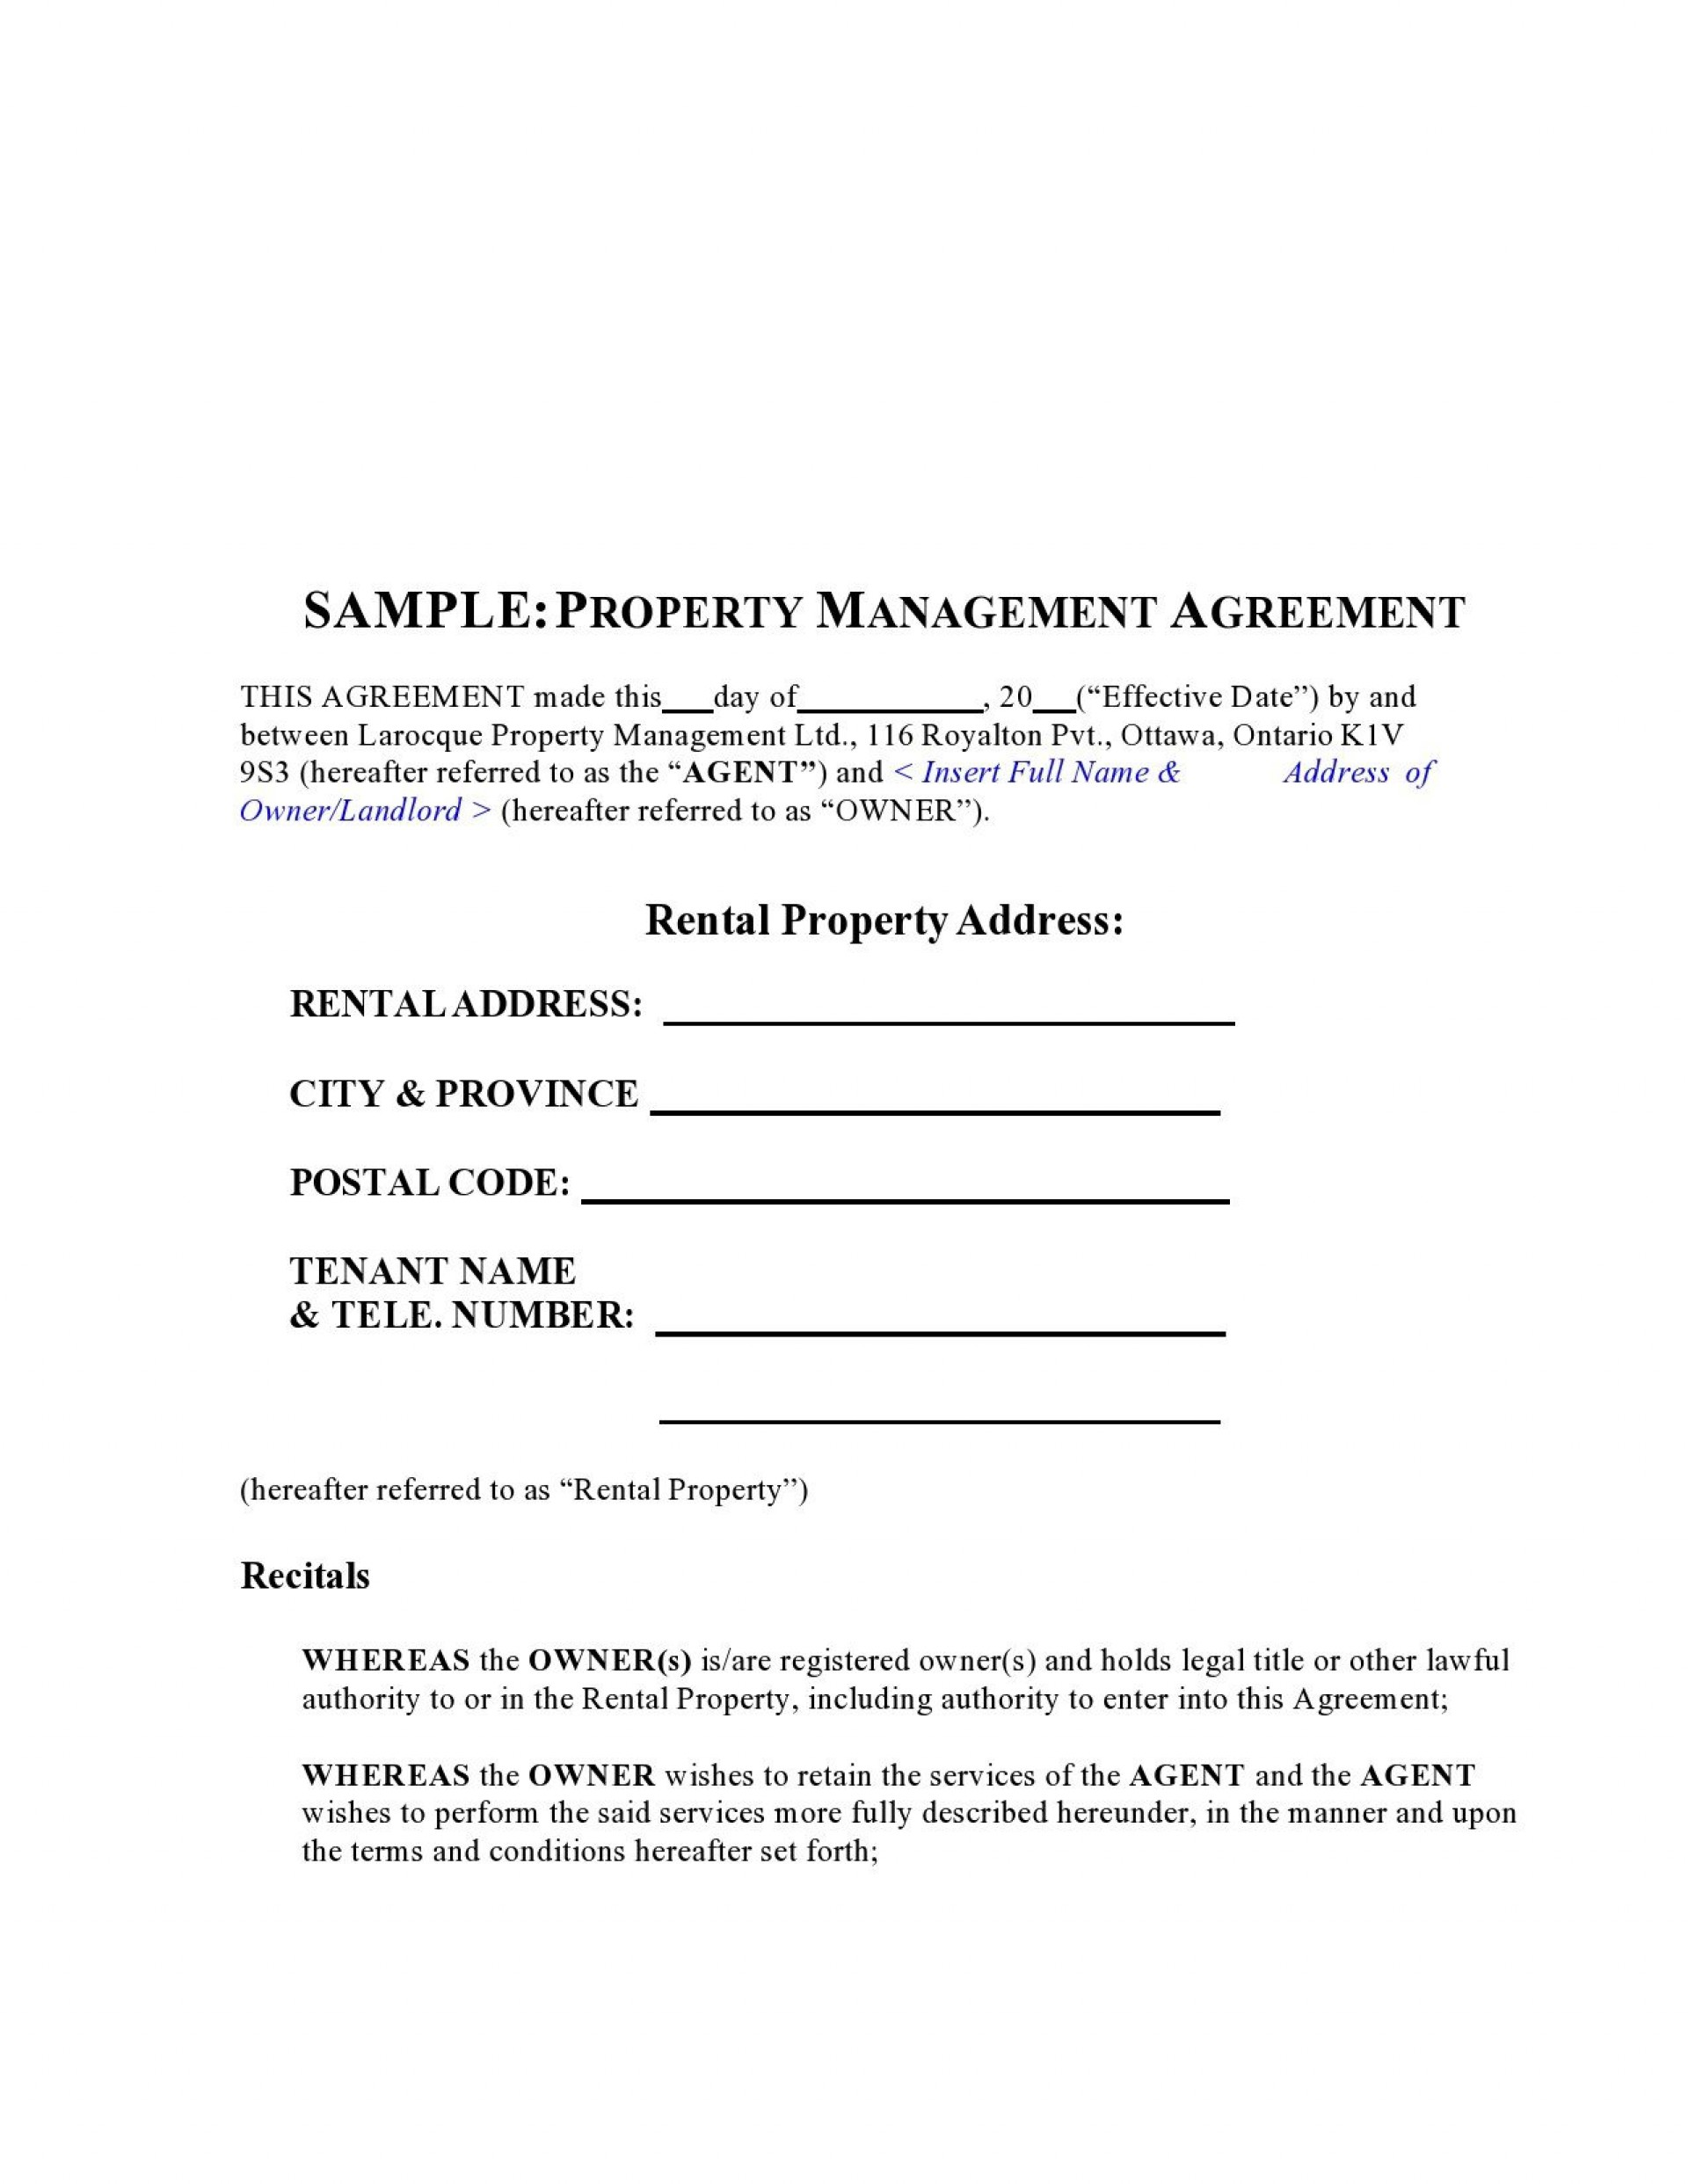 009 Awful Property Management Contract Template Ontario Highest Quality 1920